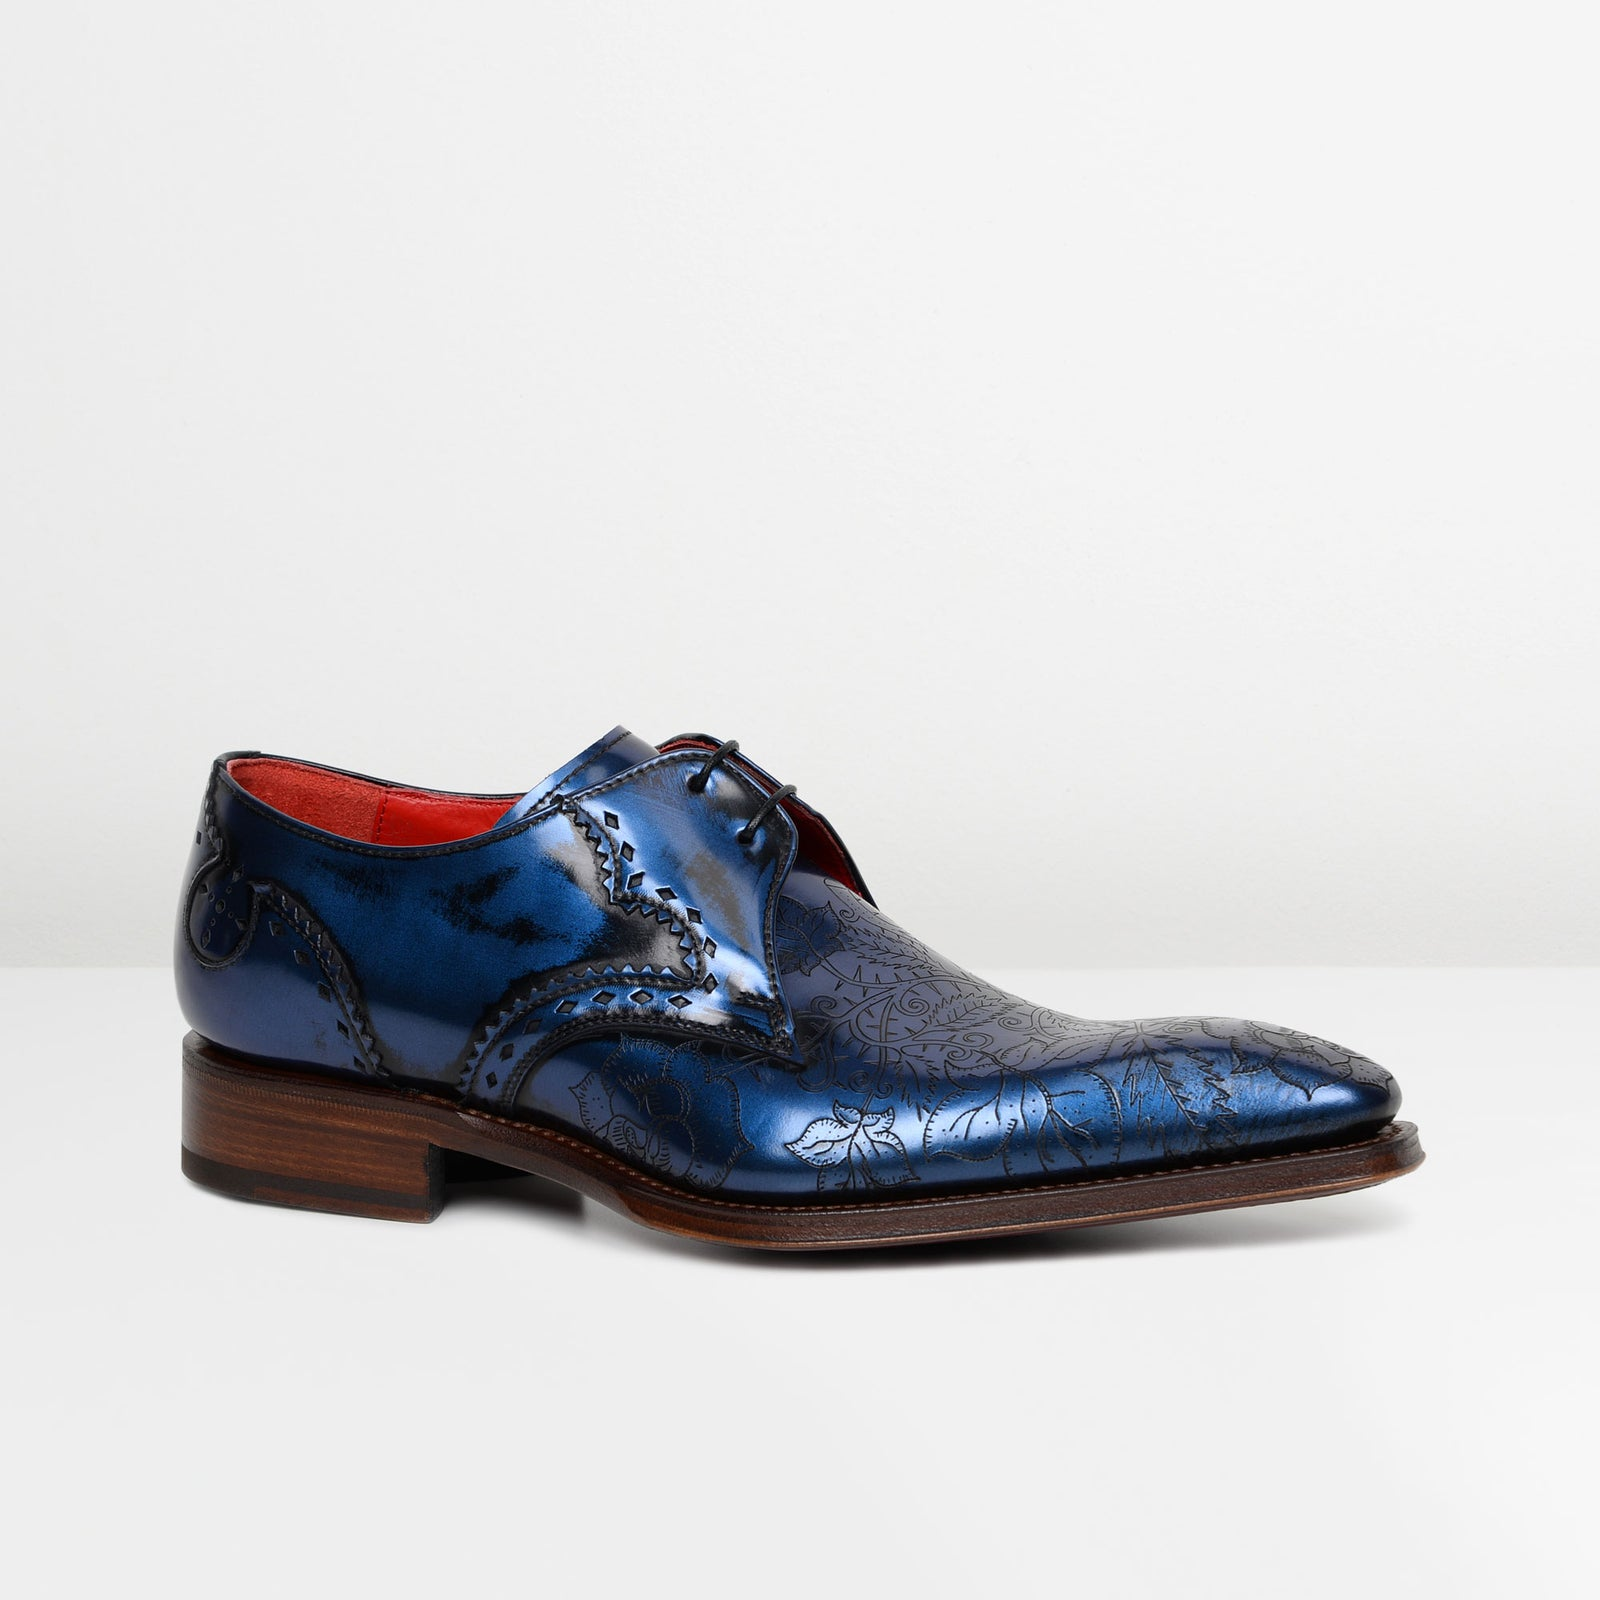 Blue Book Moon 'Poison' Gibson Shoes